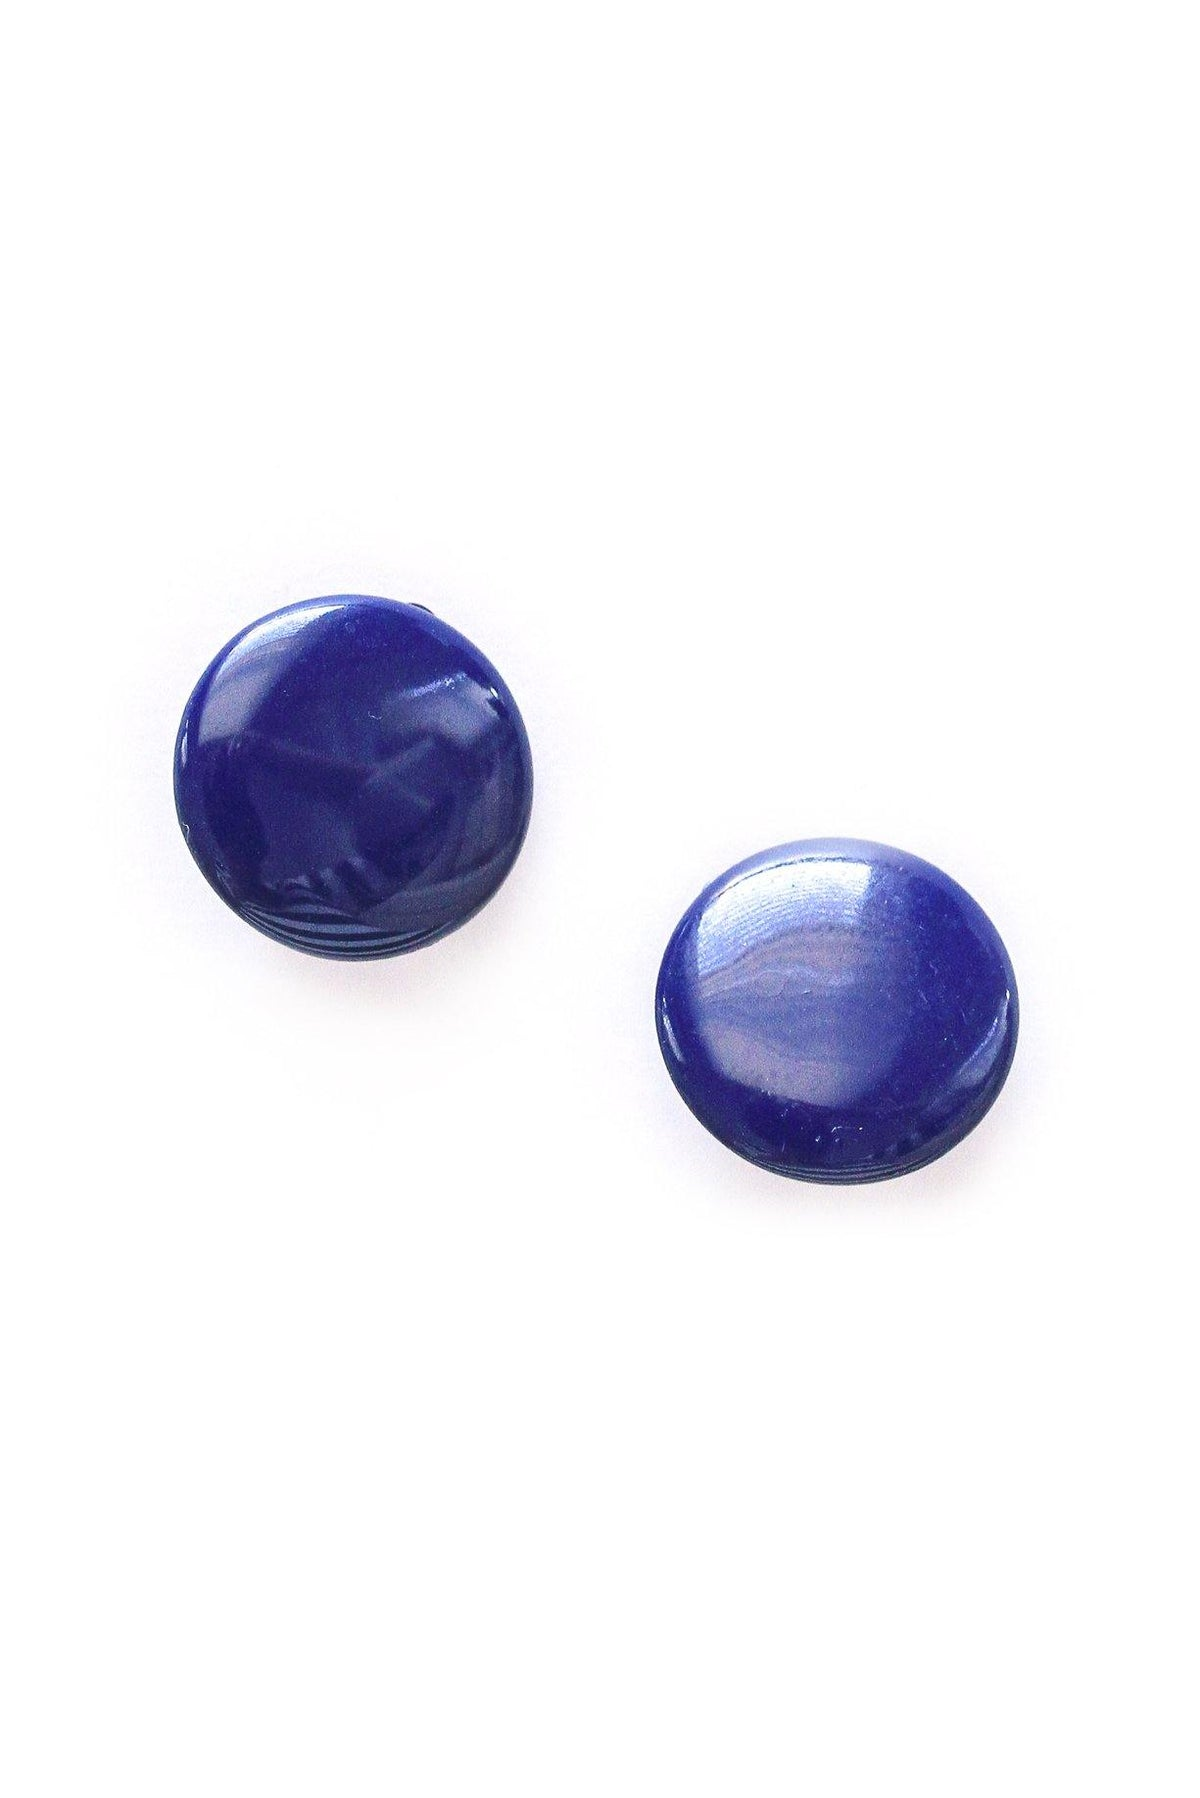 Vintage navy blue disc earrings from Sweet & Spark.